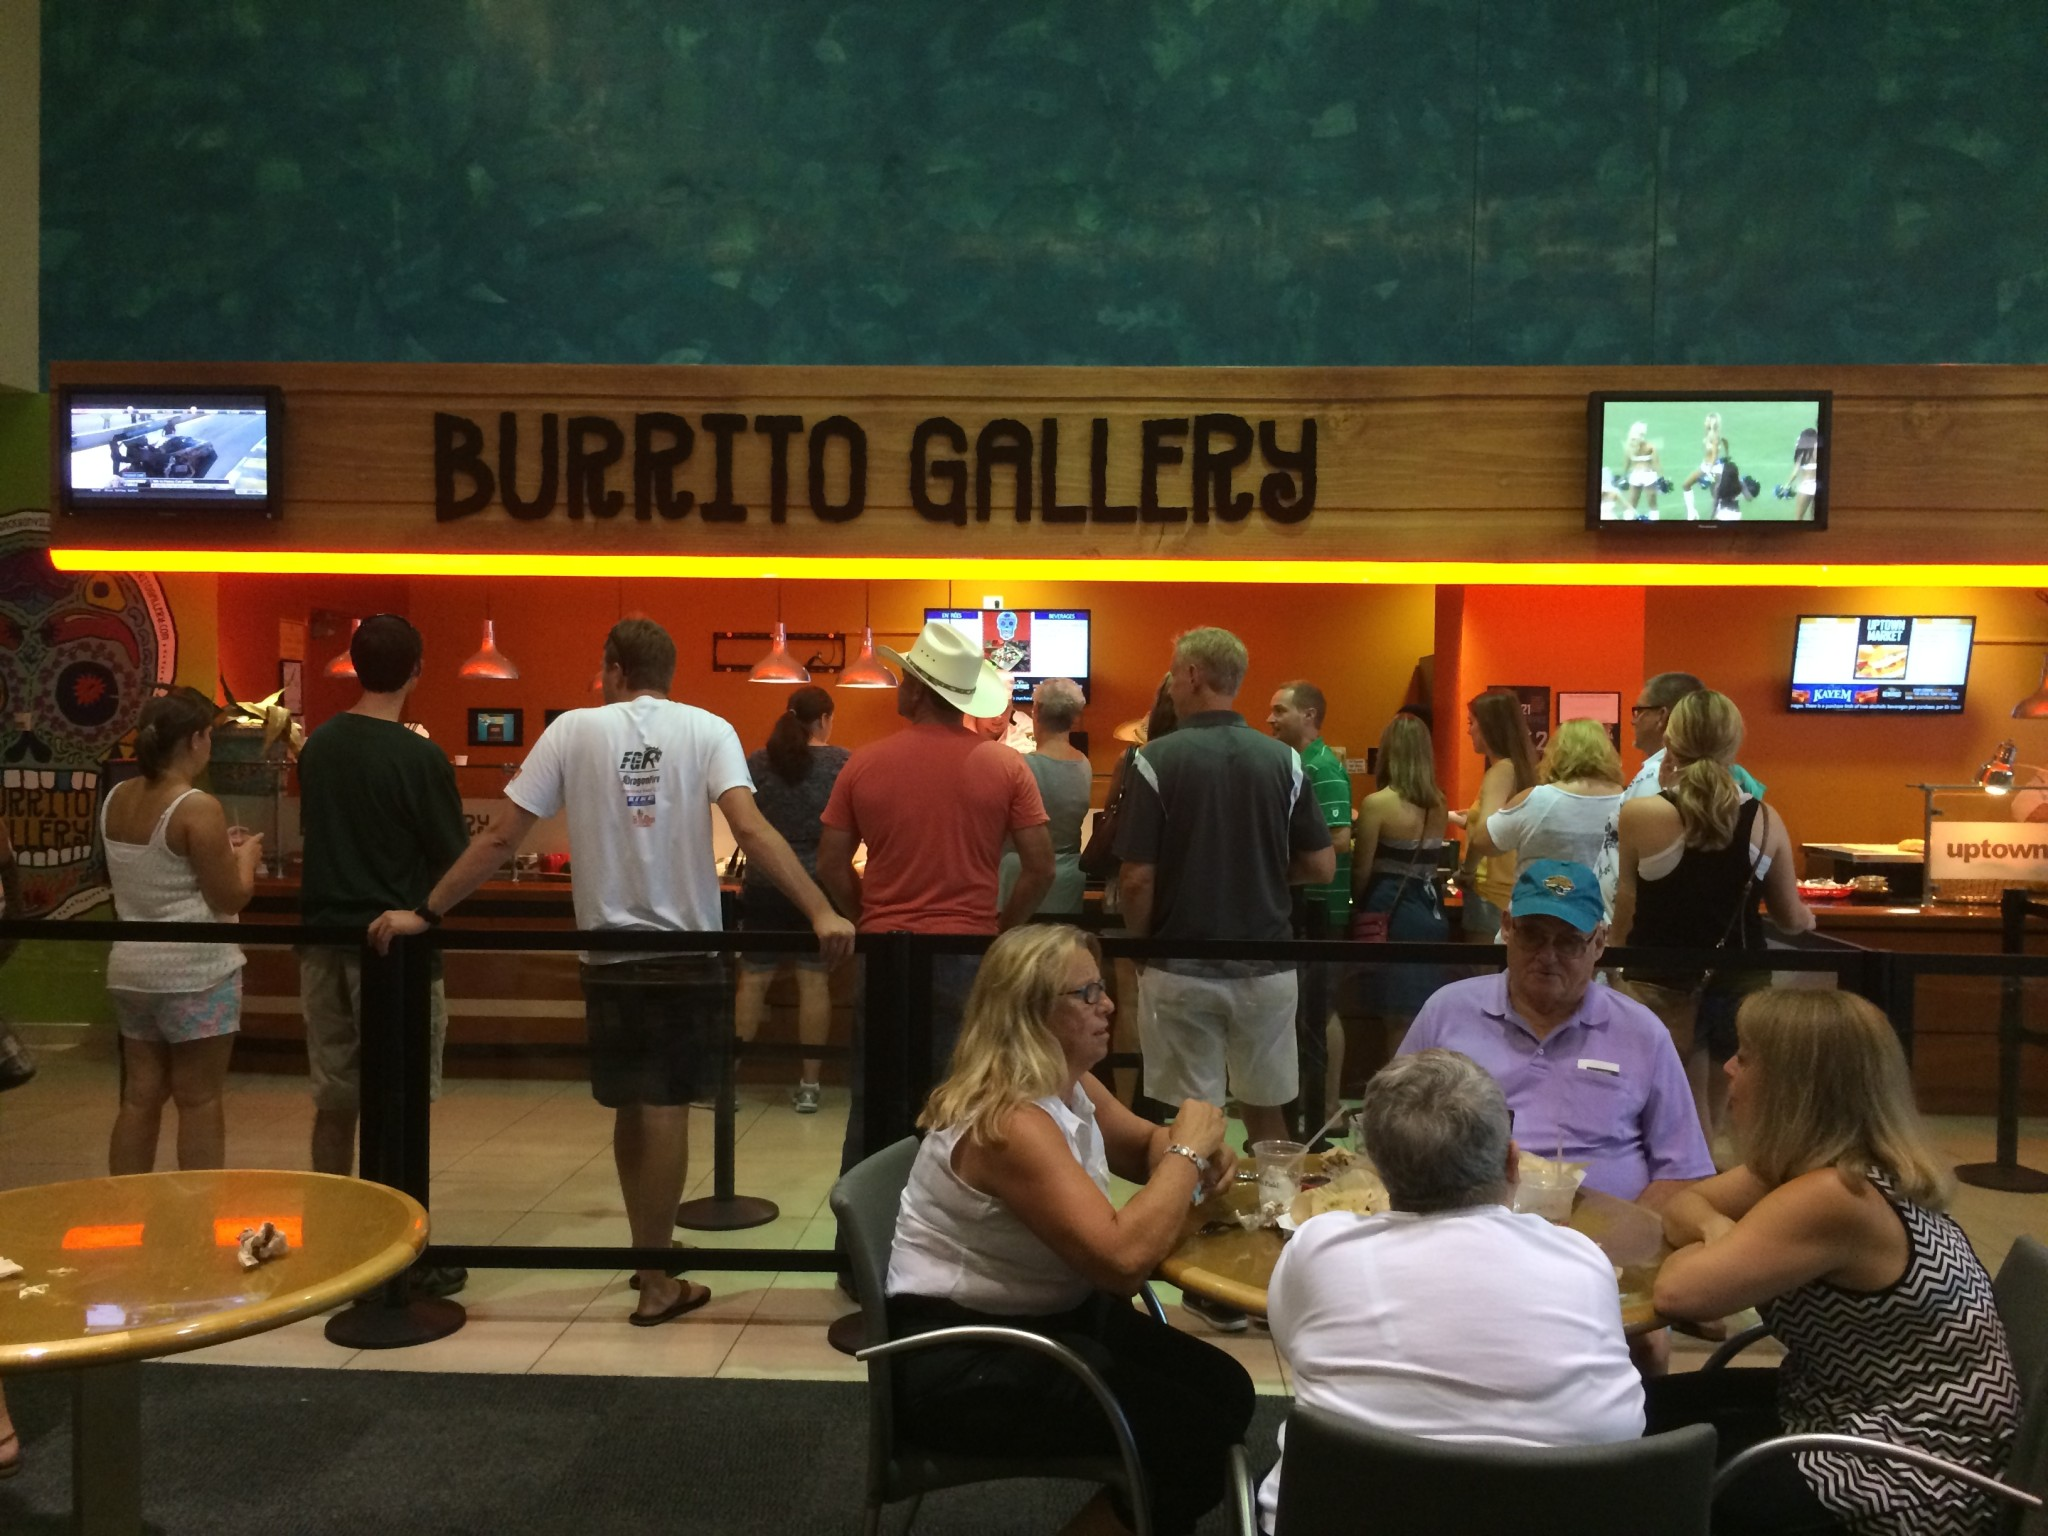 Mexican food at Burrito Gallery in TIAA Bank Field Jacksonville Jaguars game